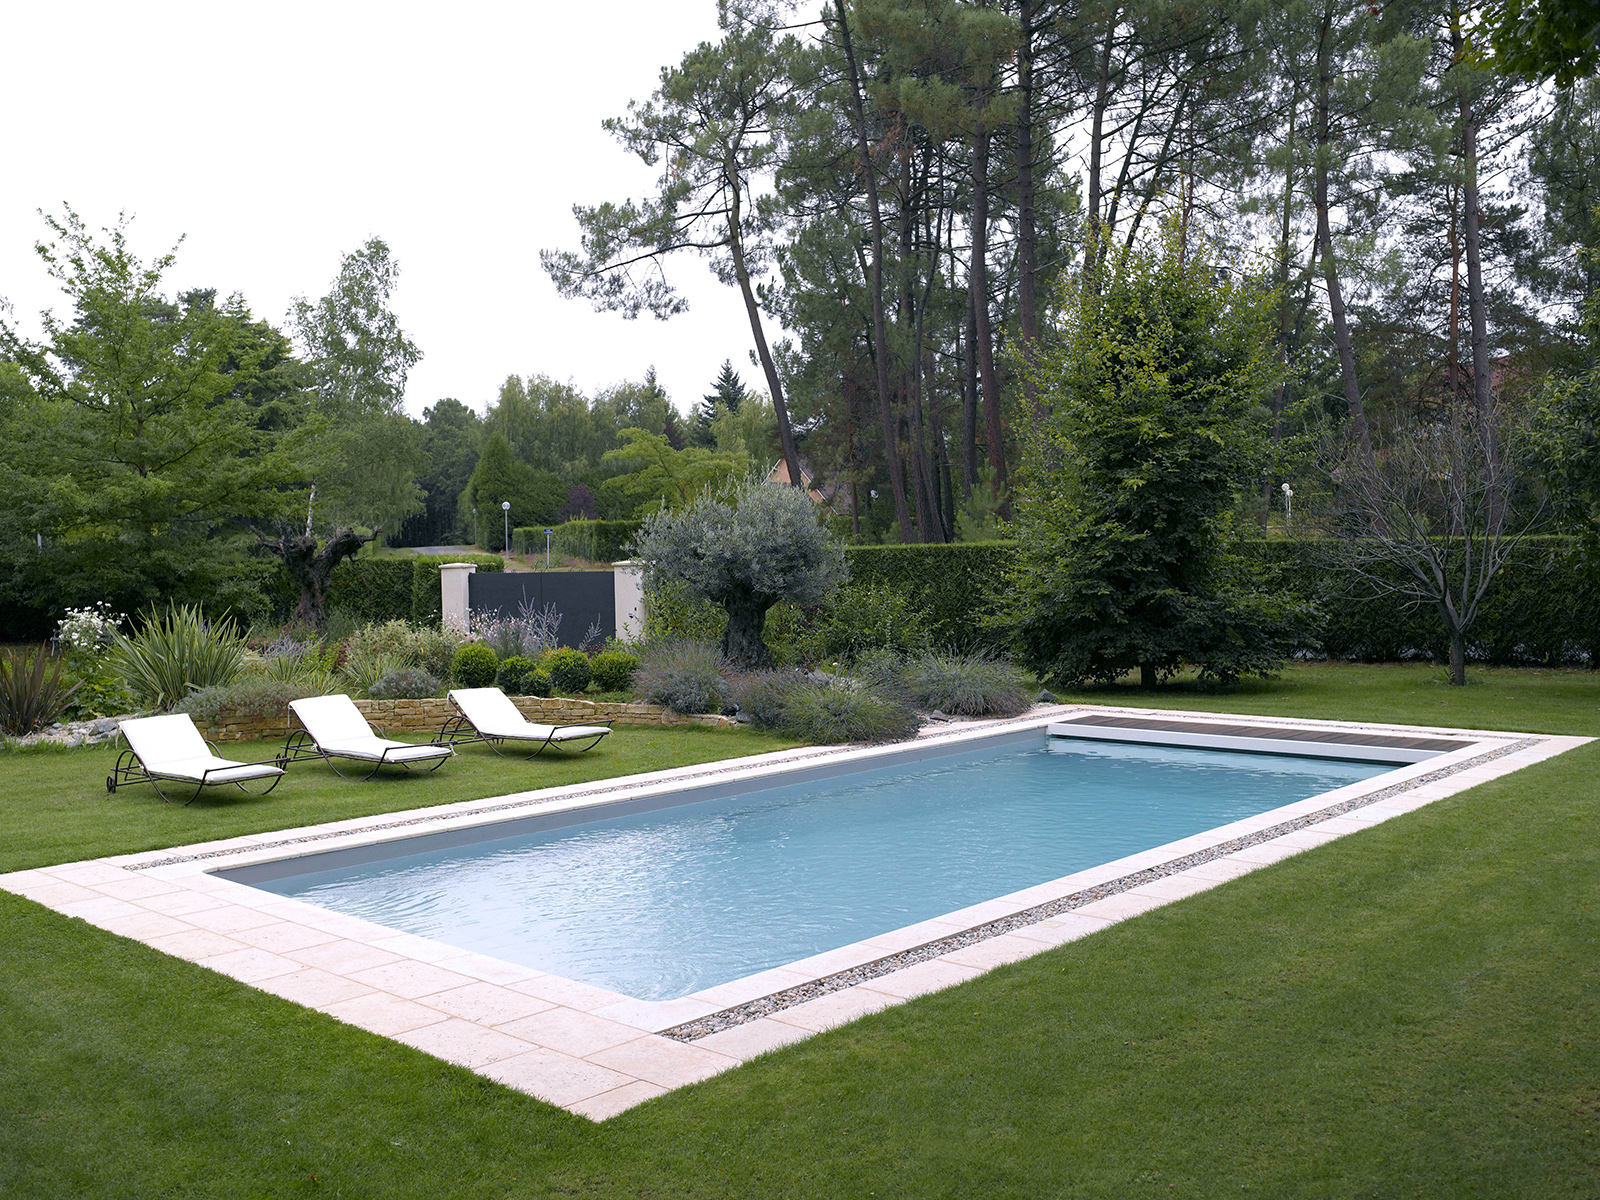 piscine rectangulaire paysagee chinon